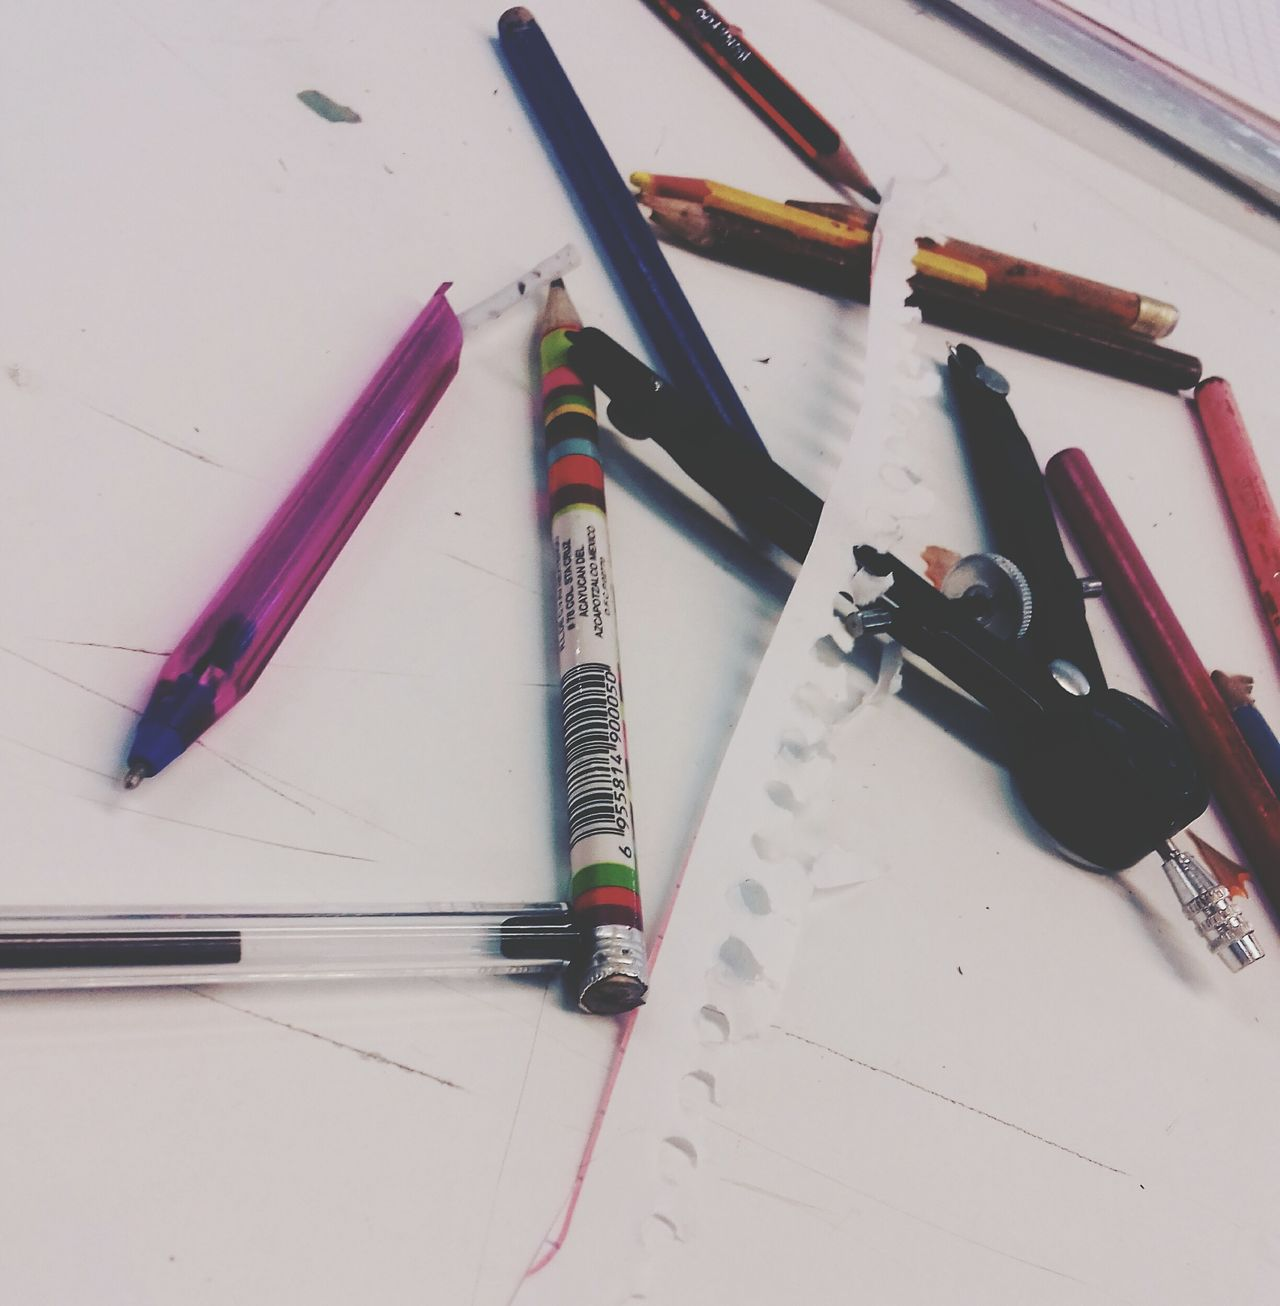 Pencil High Angle View Personal Perspective Perspective Photography The Week On Eyem Casualphotography